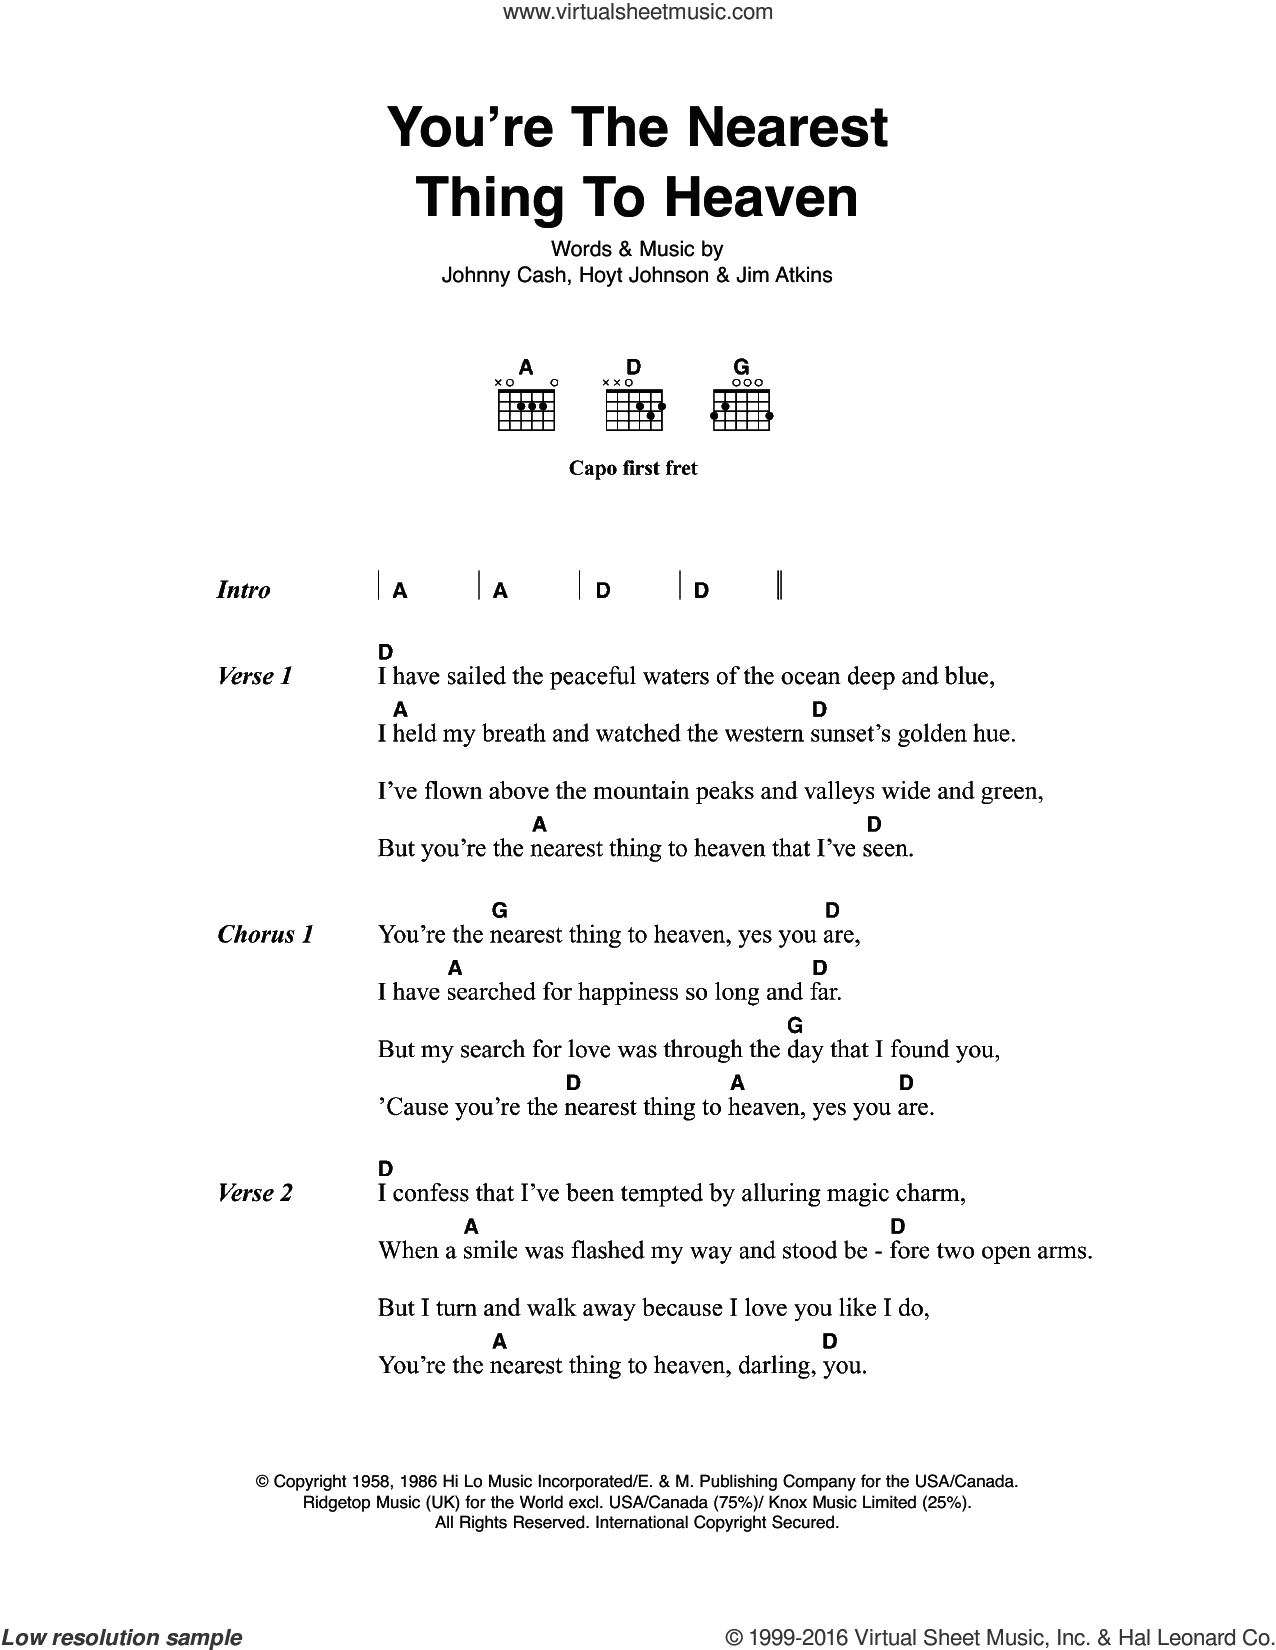 You're The Nearest Thing To Heaven sheet music for guitar (chords) by Jim Atkins